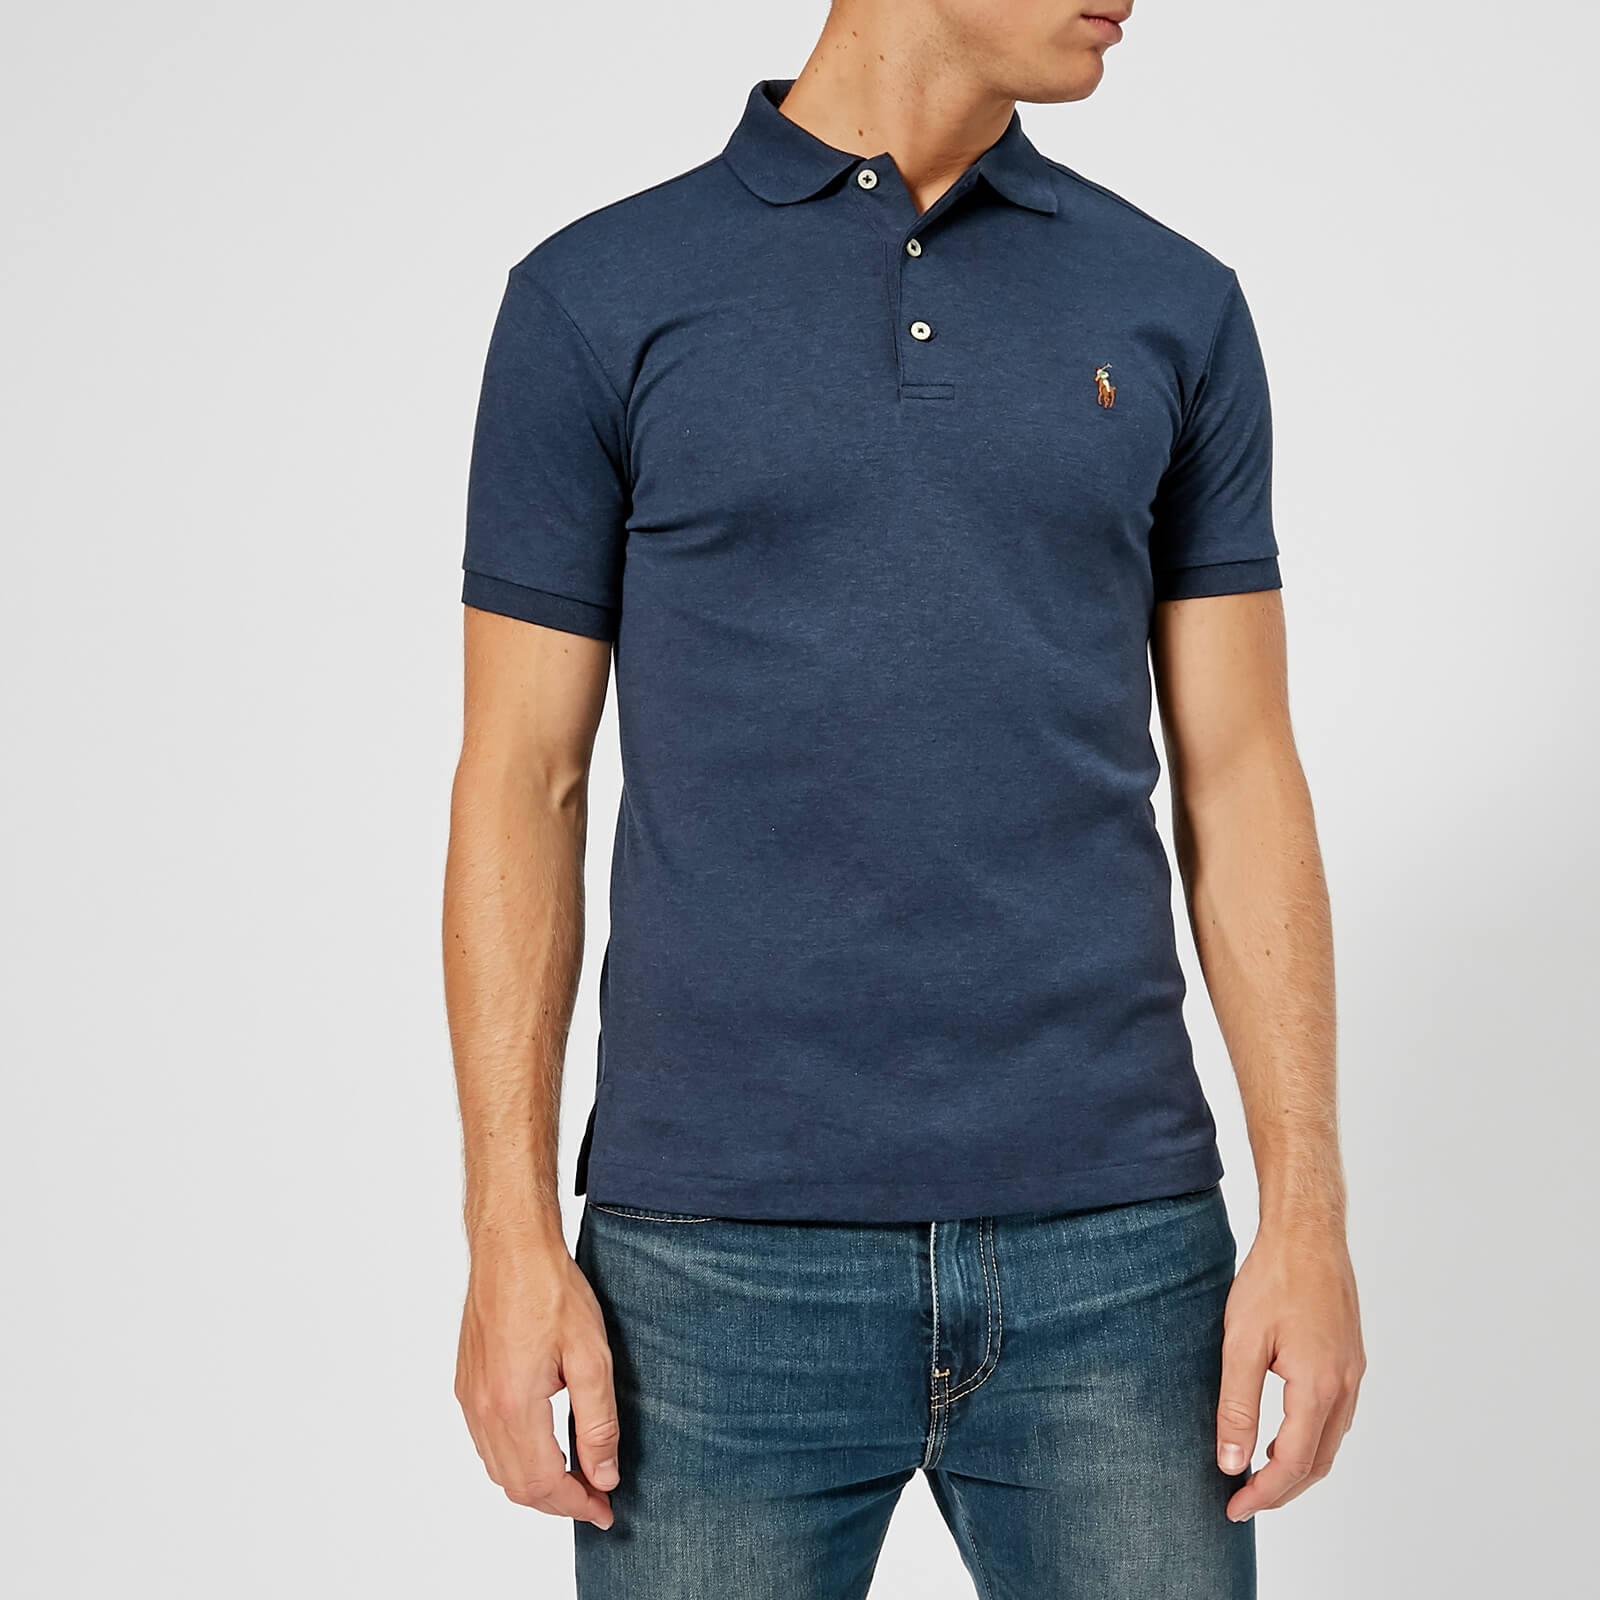 cee8e96e46389 Polo Ralph Lauren Men s Slim Fit Pima Polo Shirt - Spring Navy Heather -  Free UK Delivery over £50